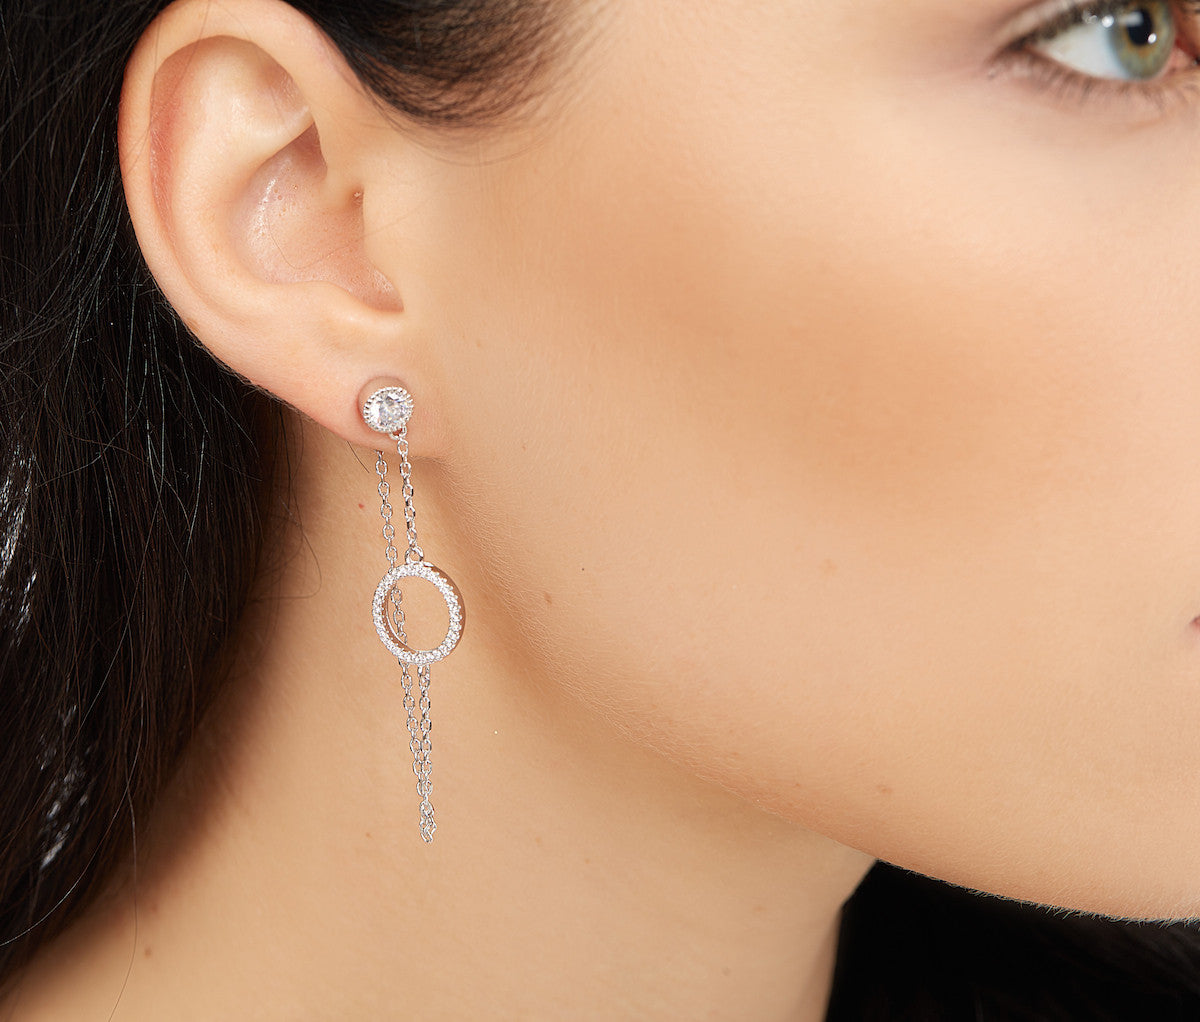 Silver Chain Earrings with a Circle Charm